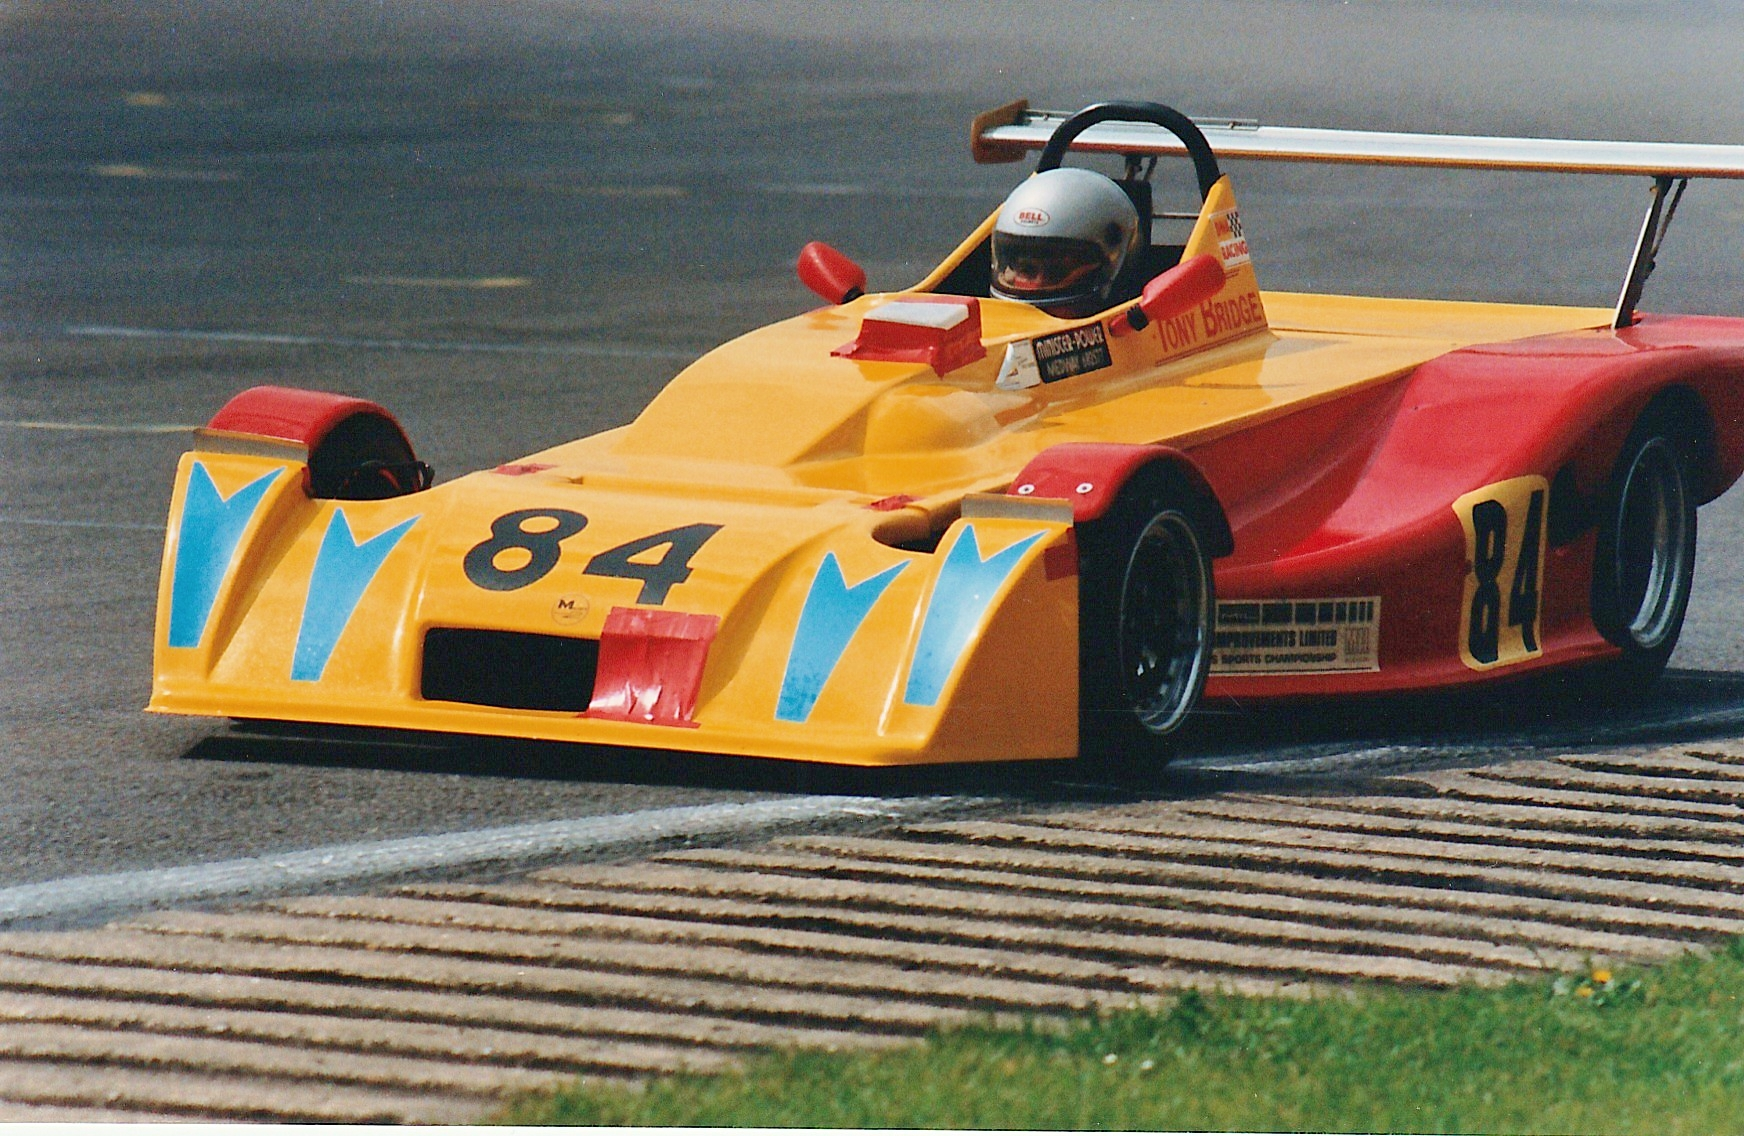 1987 MK27SG - Clubmans Formula car: a ground effect (hence the